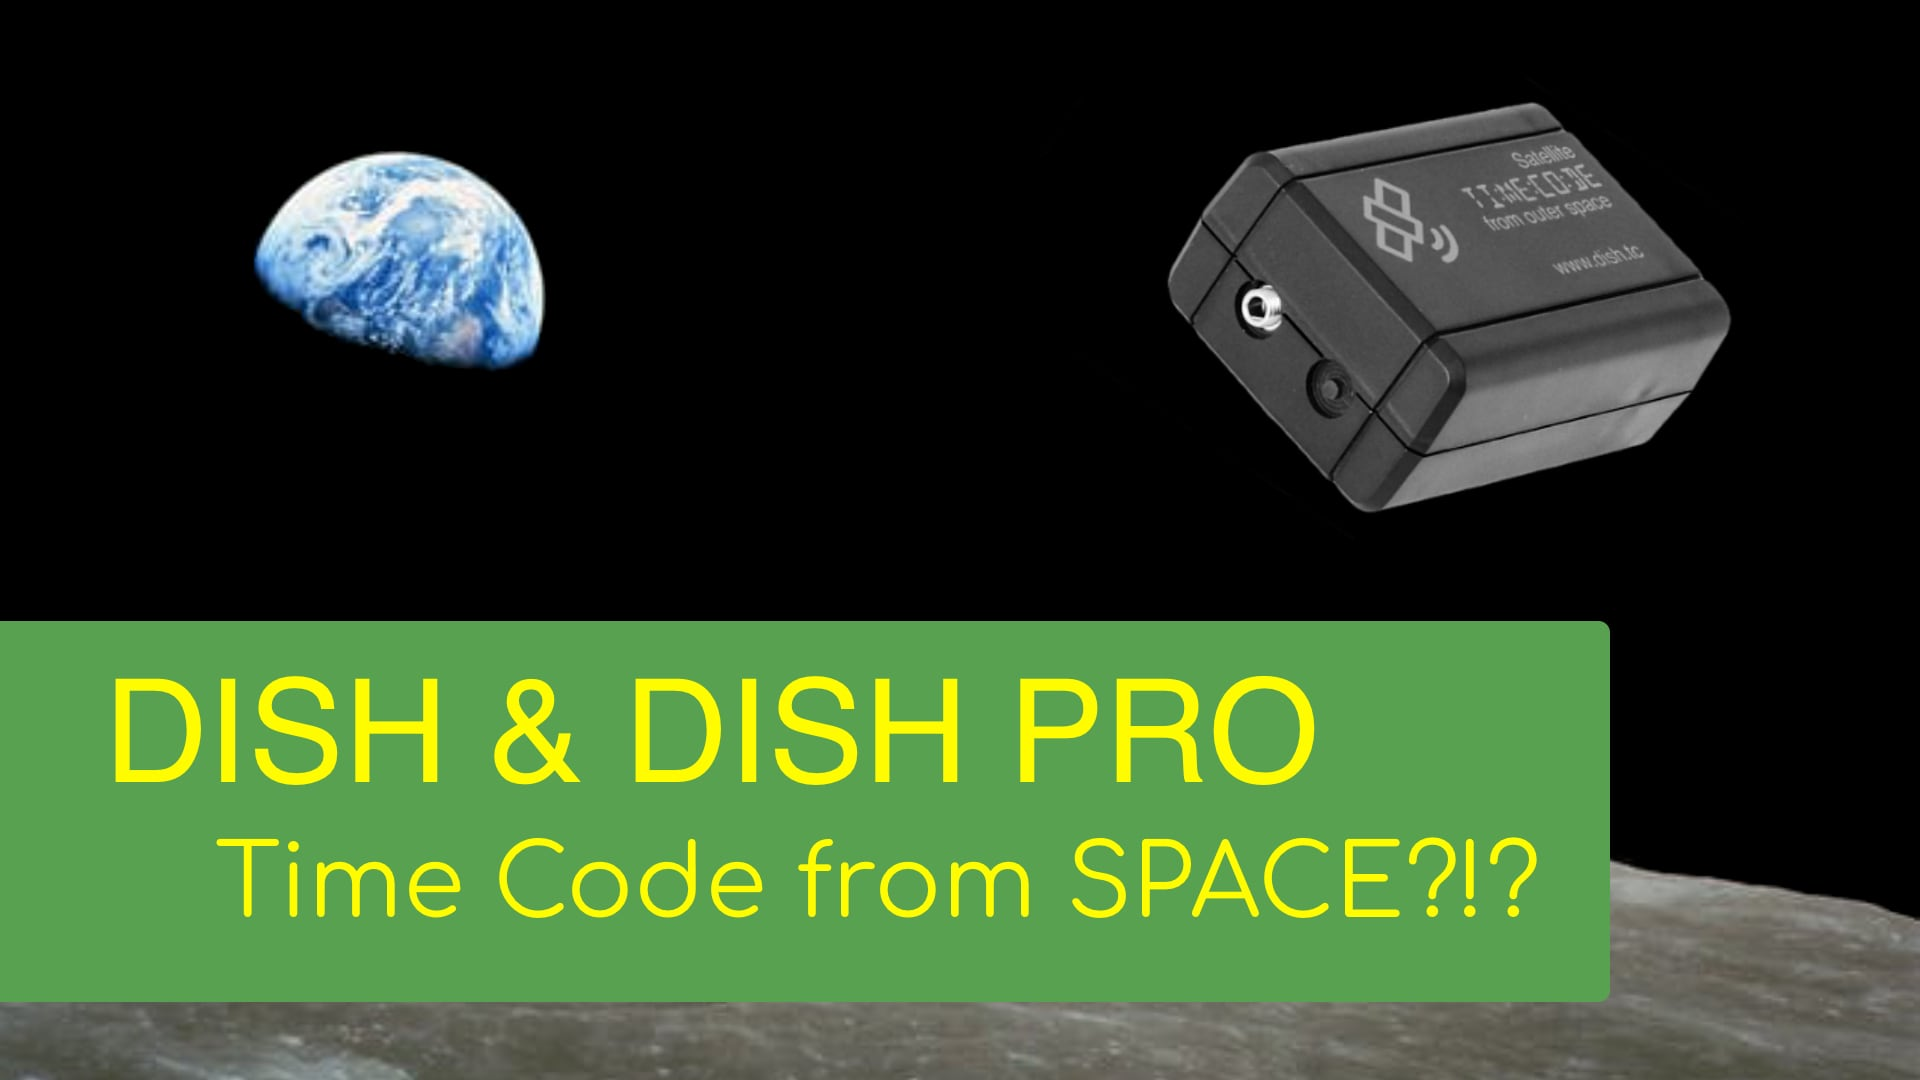 Dish and Dish Pro Time Code Boxes sync don't need sync. They get it from space.